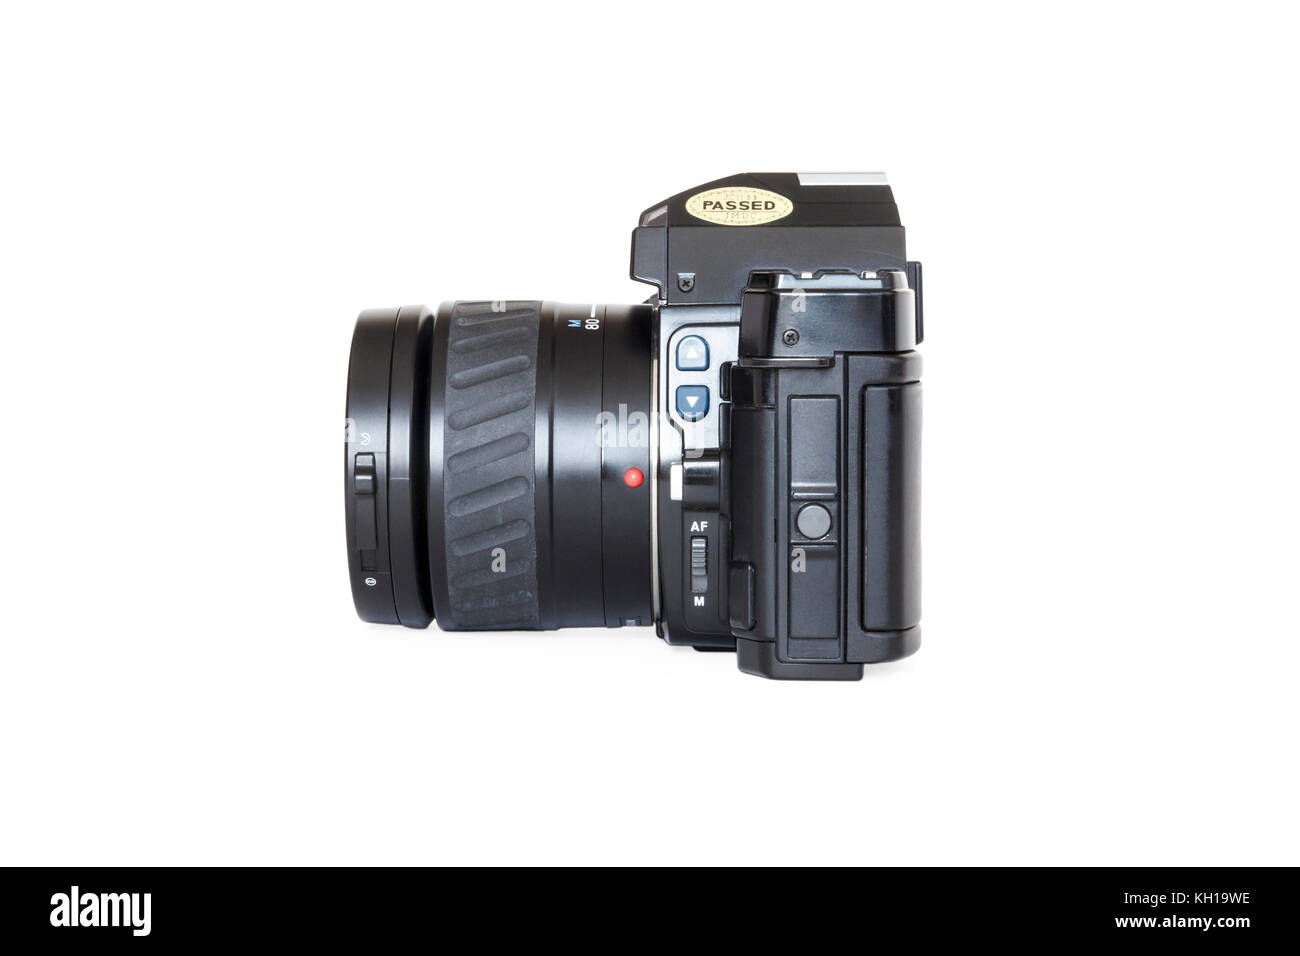 1980s Minolta Maxxum 7000 automatic 35mm roll film SLR camera, 35-80mm zoom lens, isolated against a white background - Stock Image